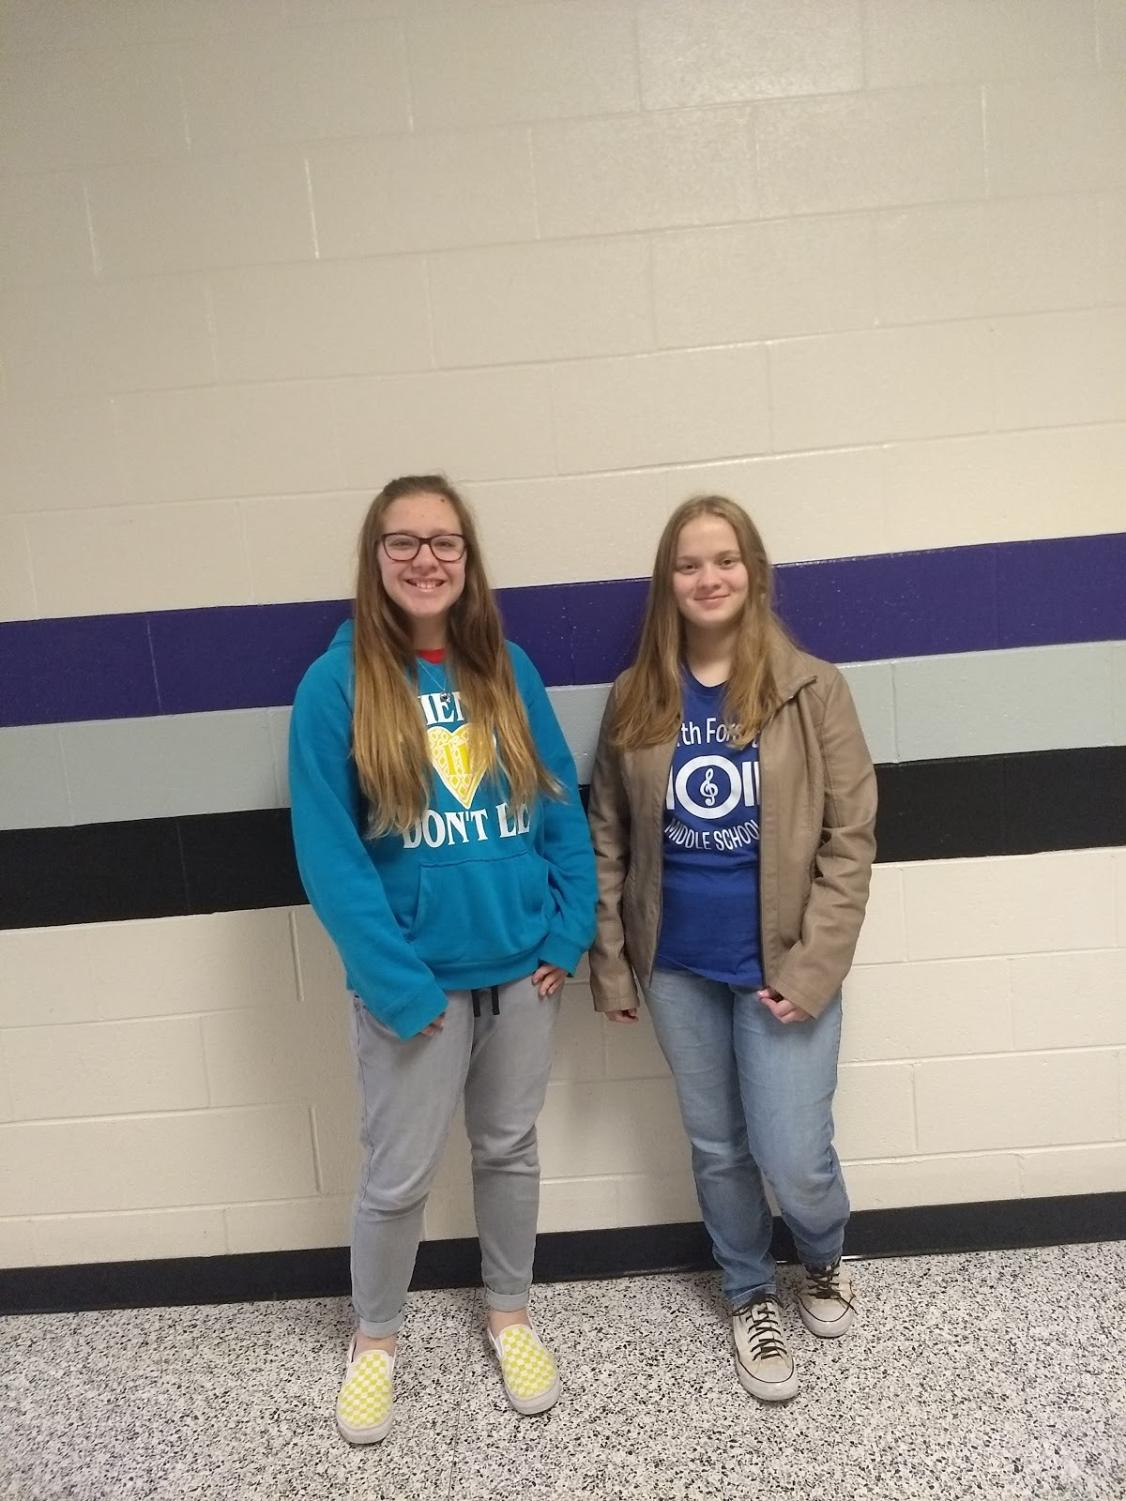 Freshmans Eva Watson, and Amber Cabezas both watched Frozen II, and loved it.